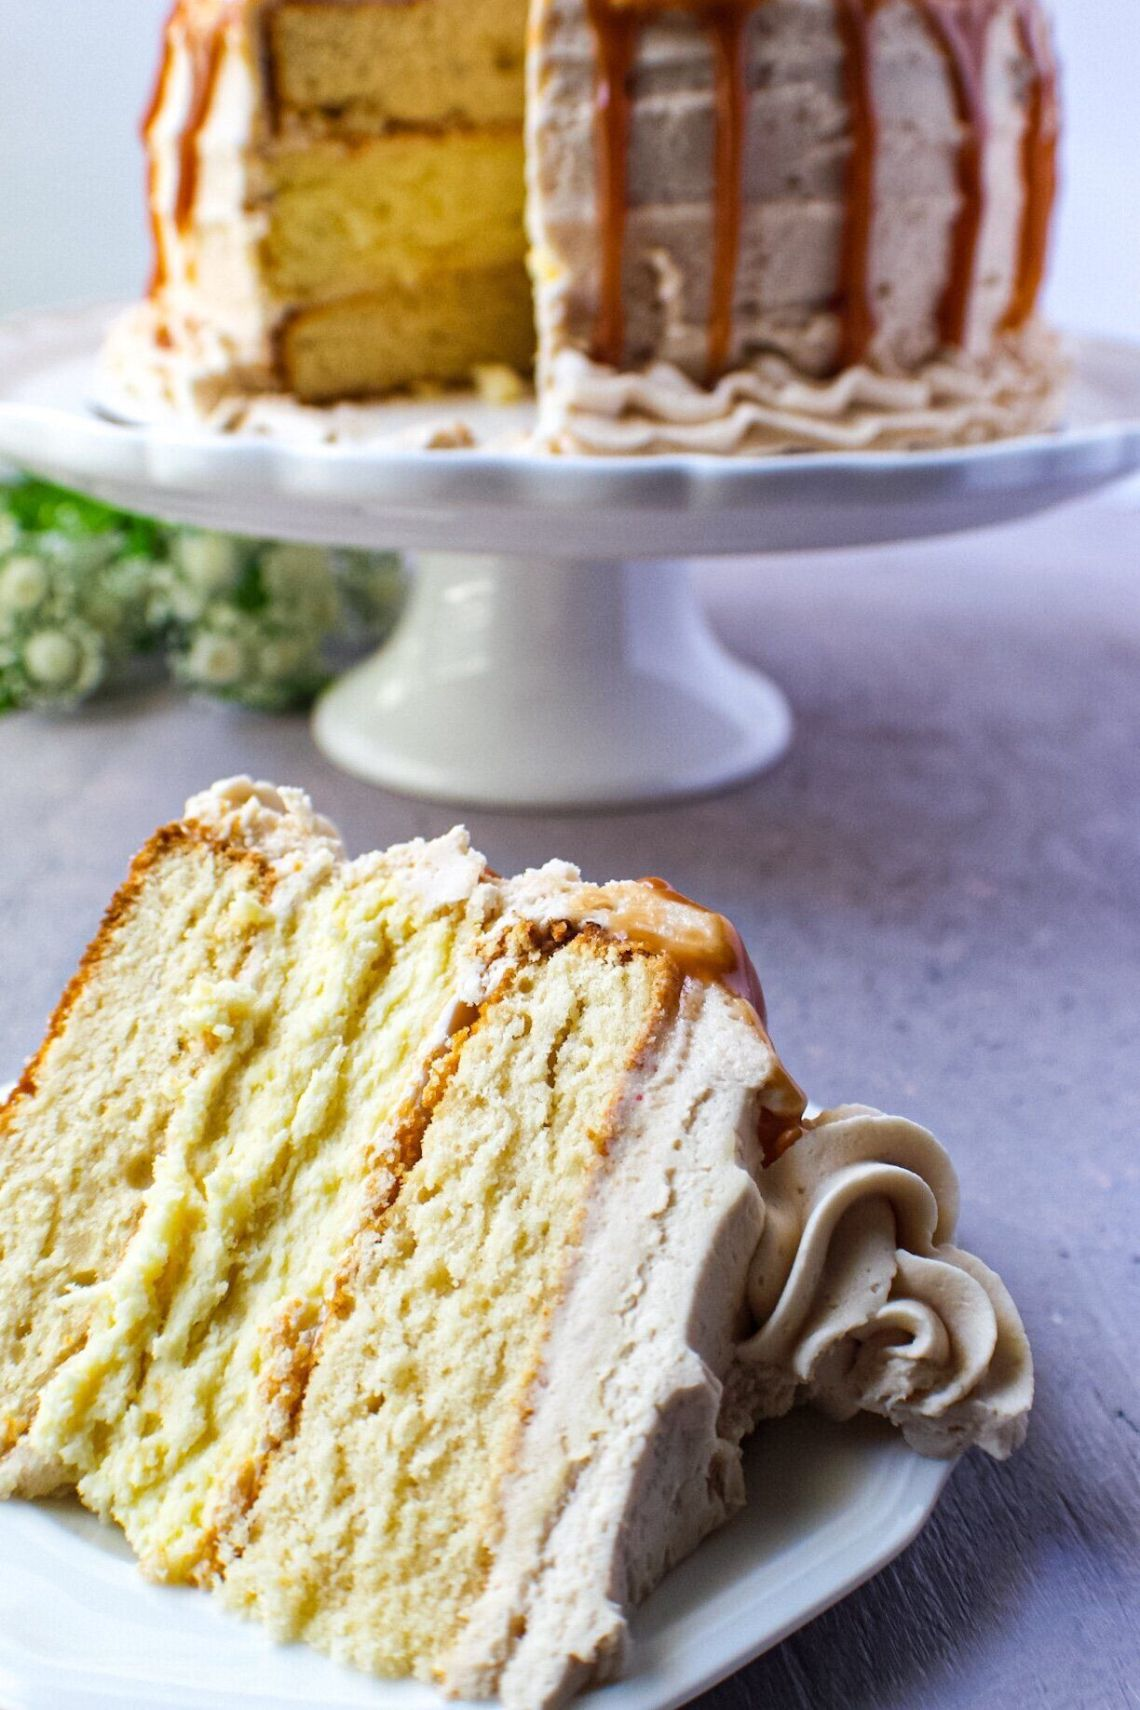 Caramel Cheesecake Layer Cake from The Pink Owl Kitchen